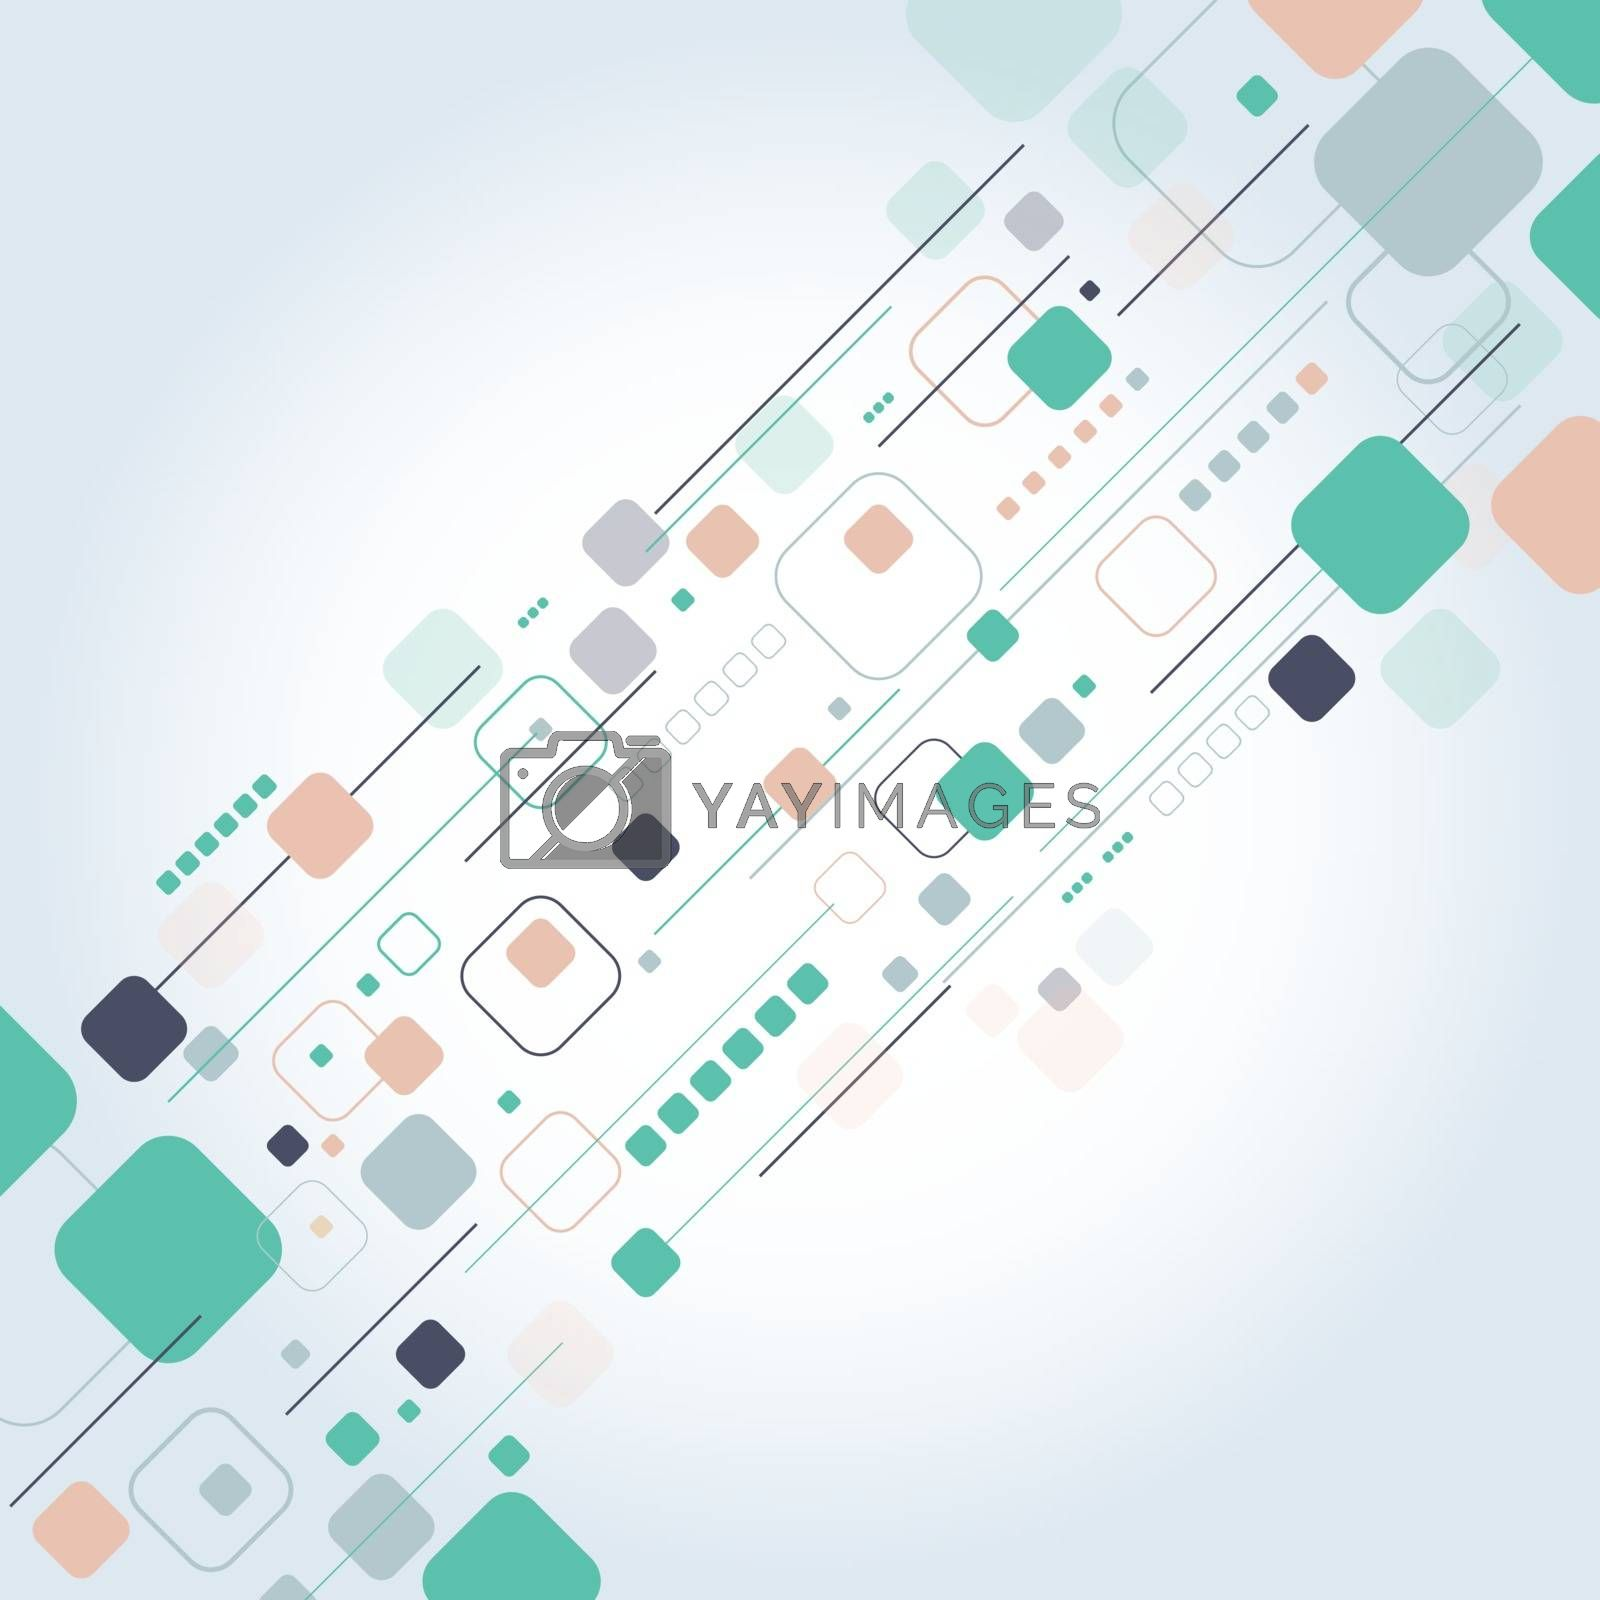 Abstract technology square rounded with lines colorful background for business, Vector illustration